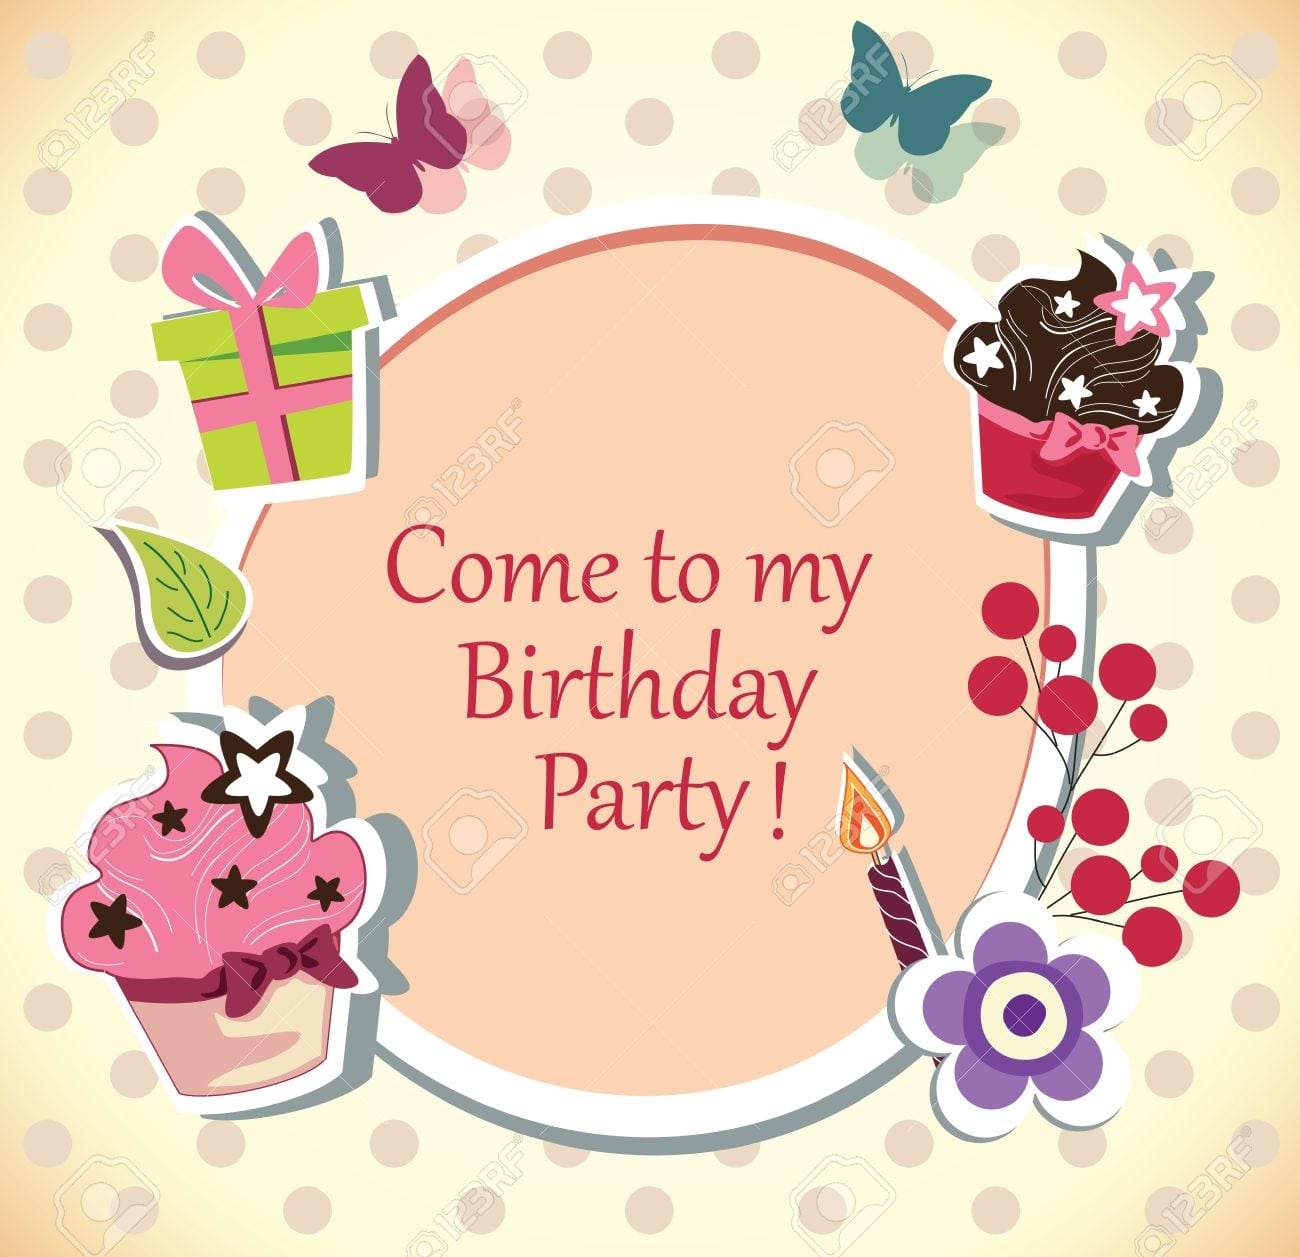 Birthday Party Invitation Card Royalty Free Cliparts, Vectors, And